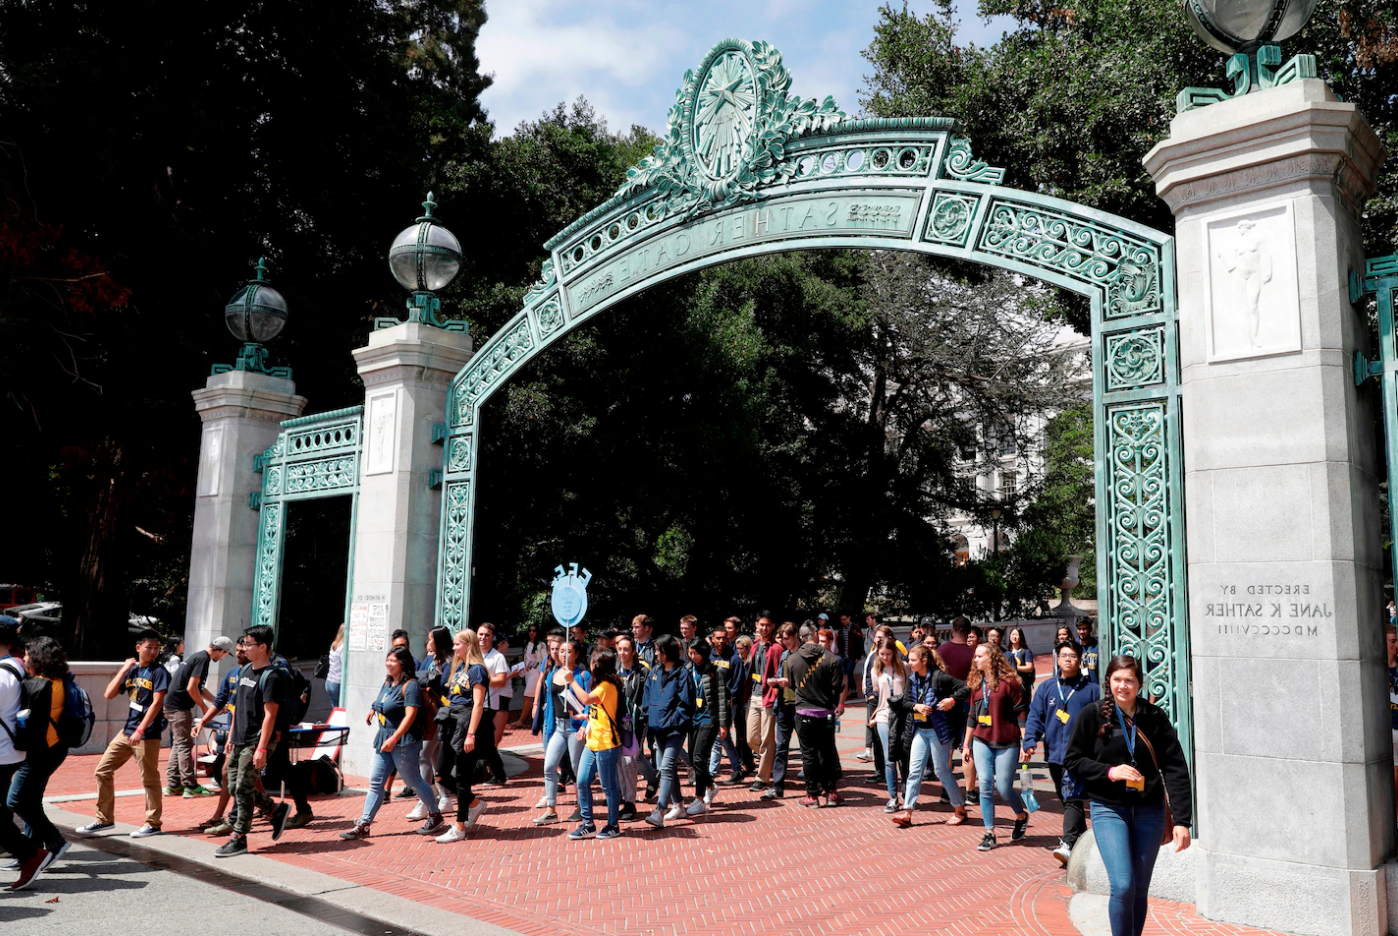 Sather Gate Washington Post photo Marcio Jose Sanchez/AP